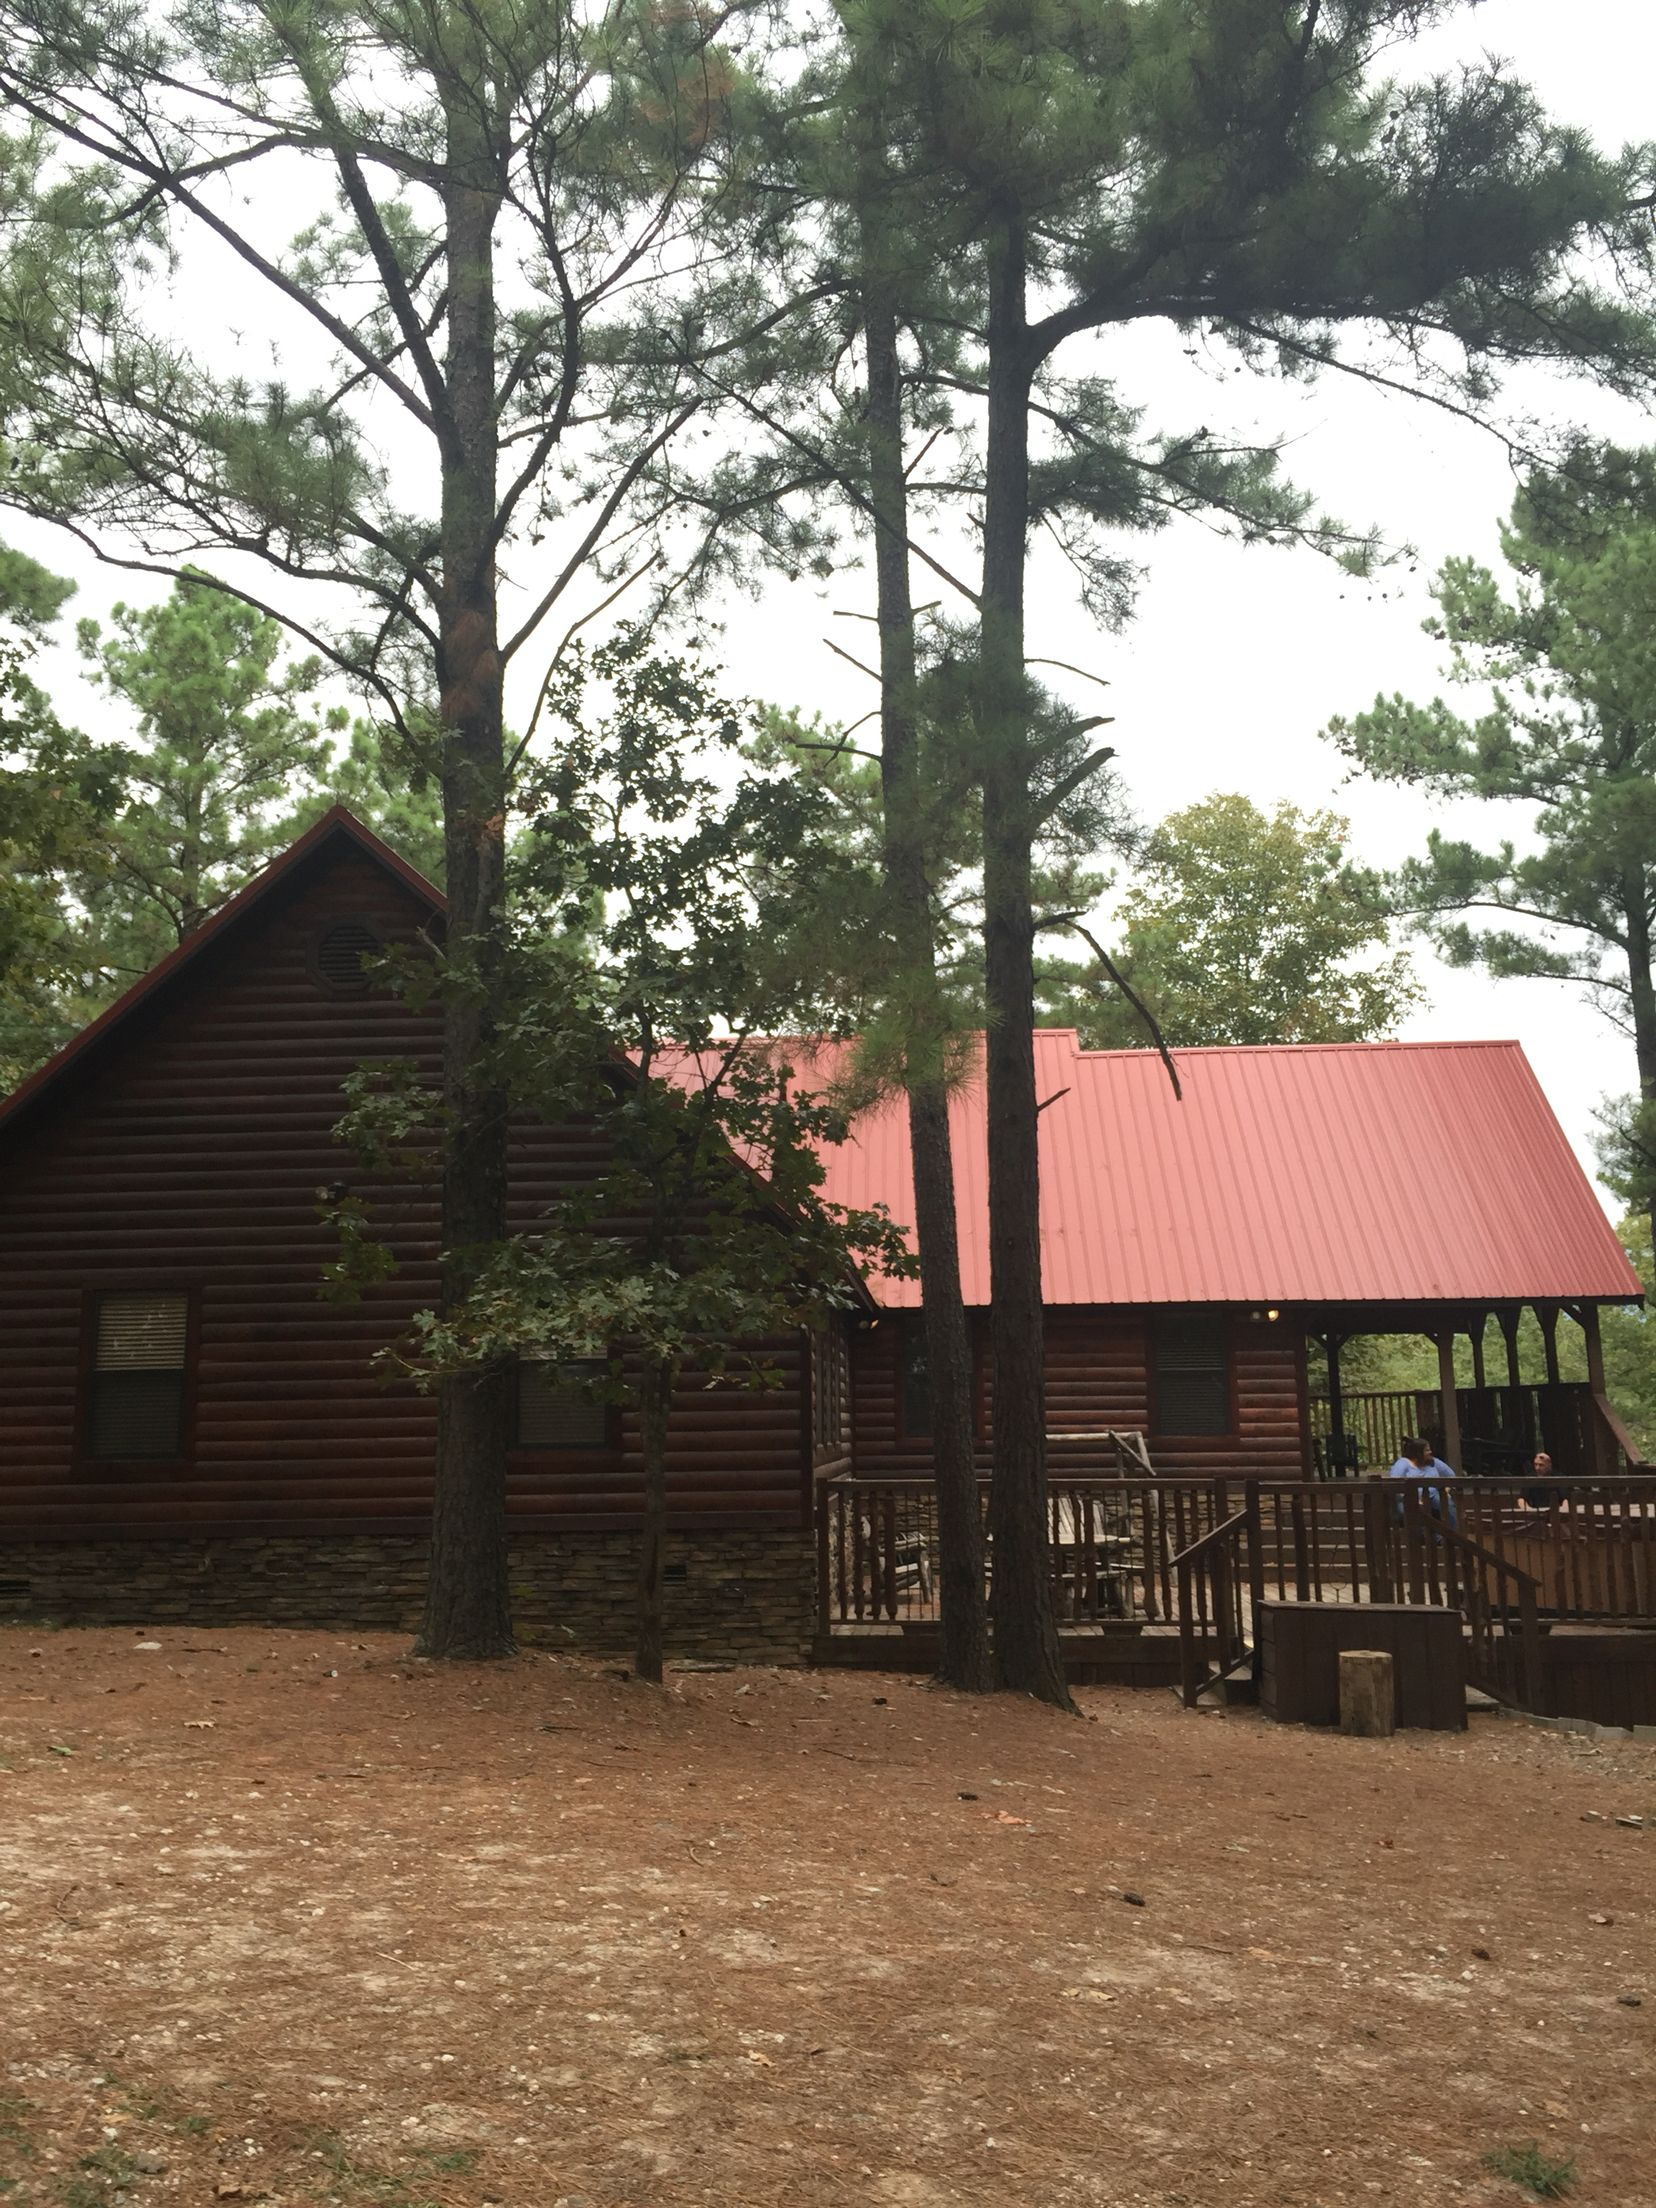 #Mountain Star Lodge in #Broken Bow, OK